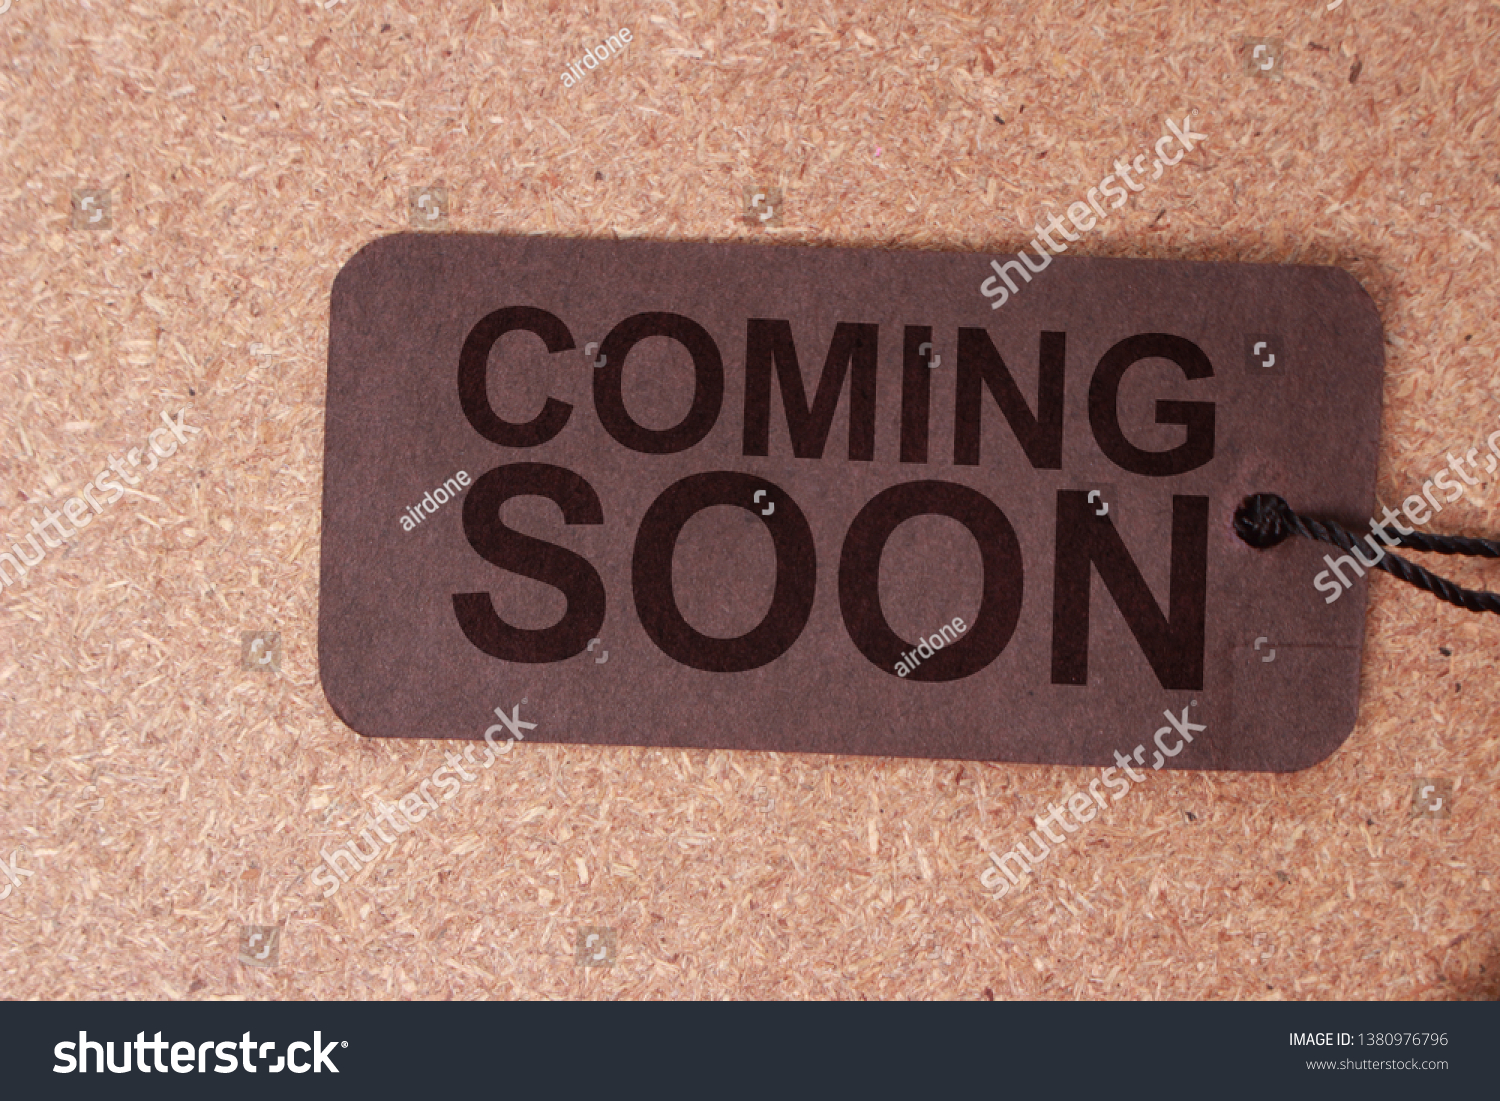 Coming Soon Motivational Inspirational Business Marketing Stock Photo Edit Now 1380976796